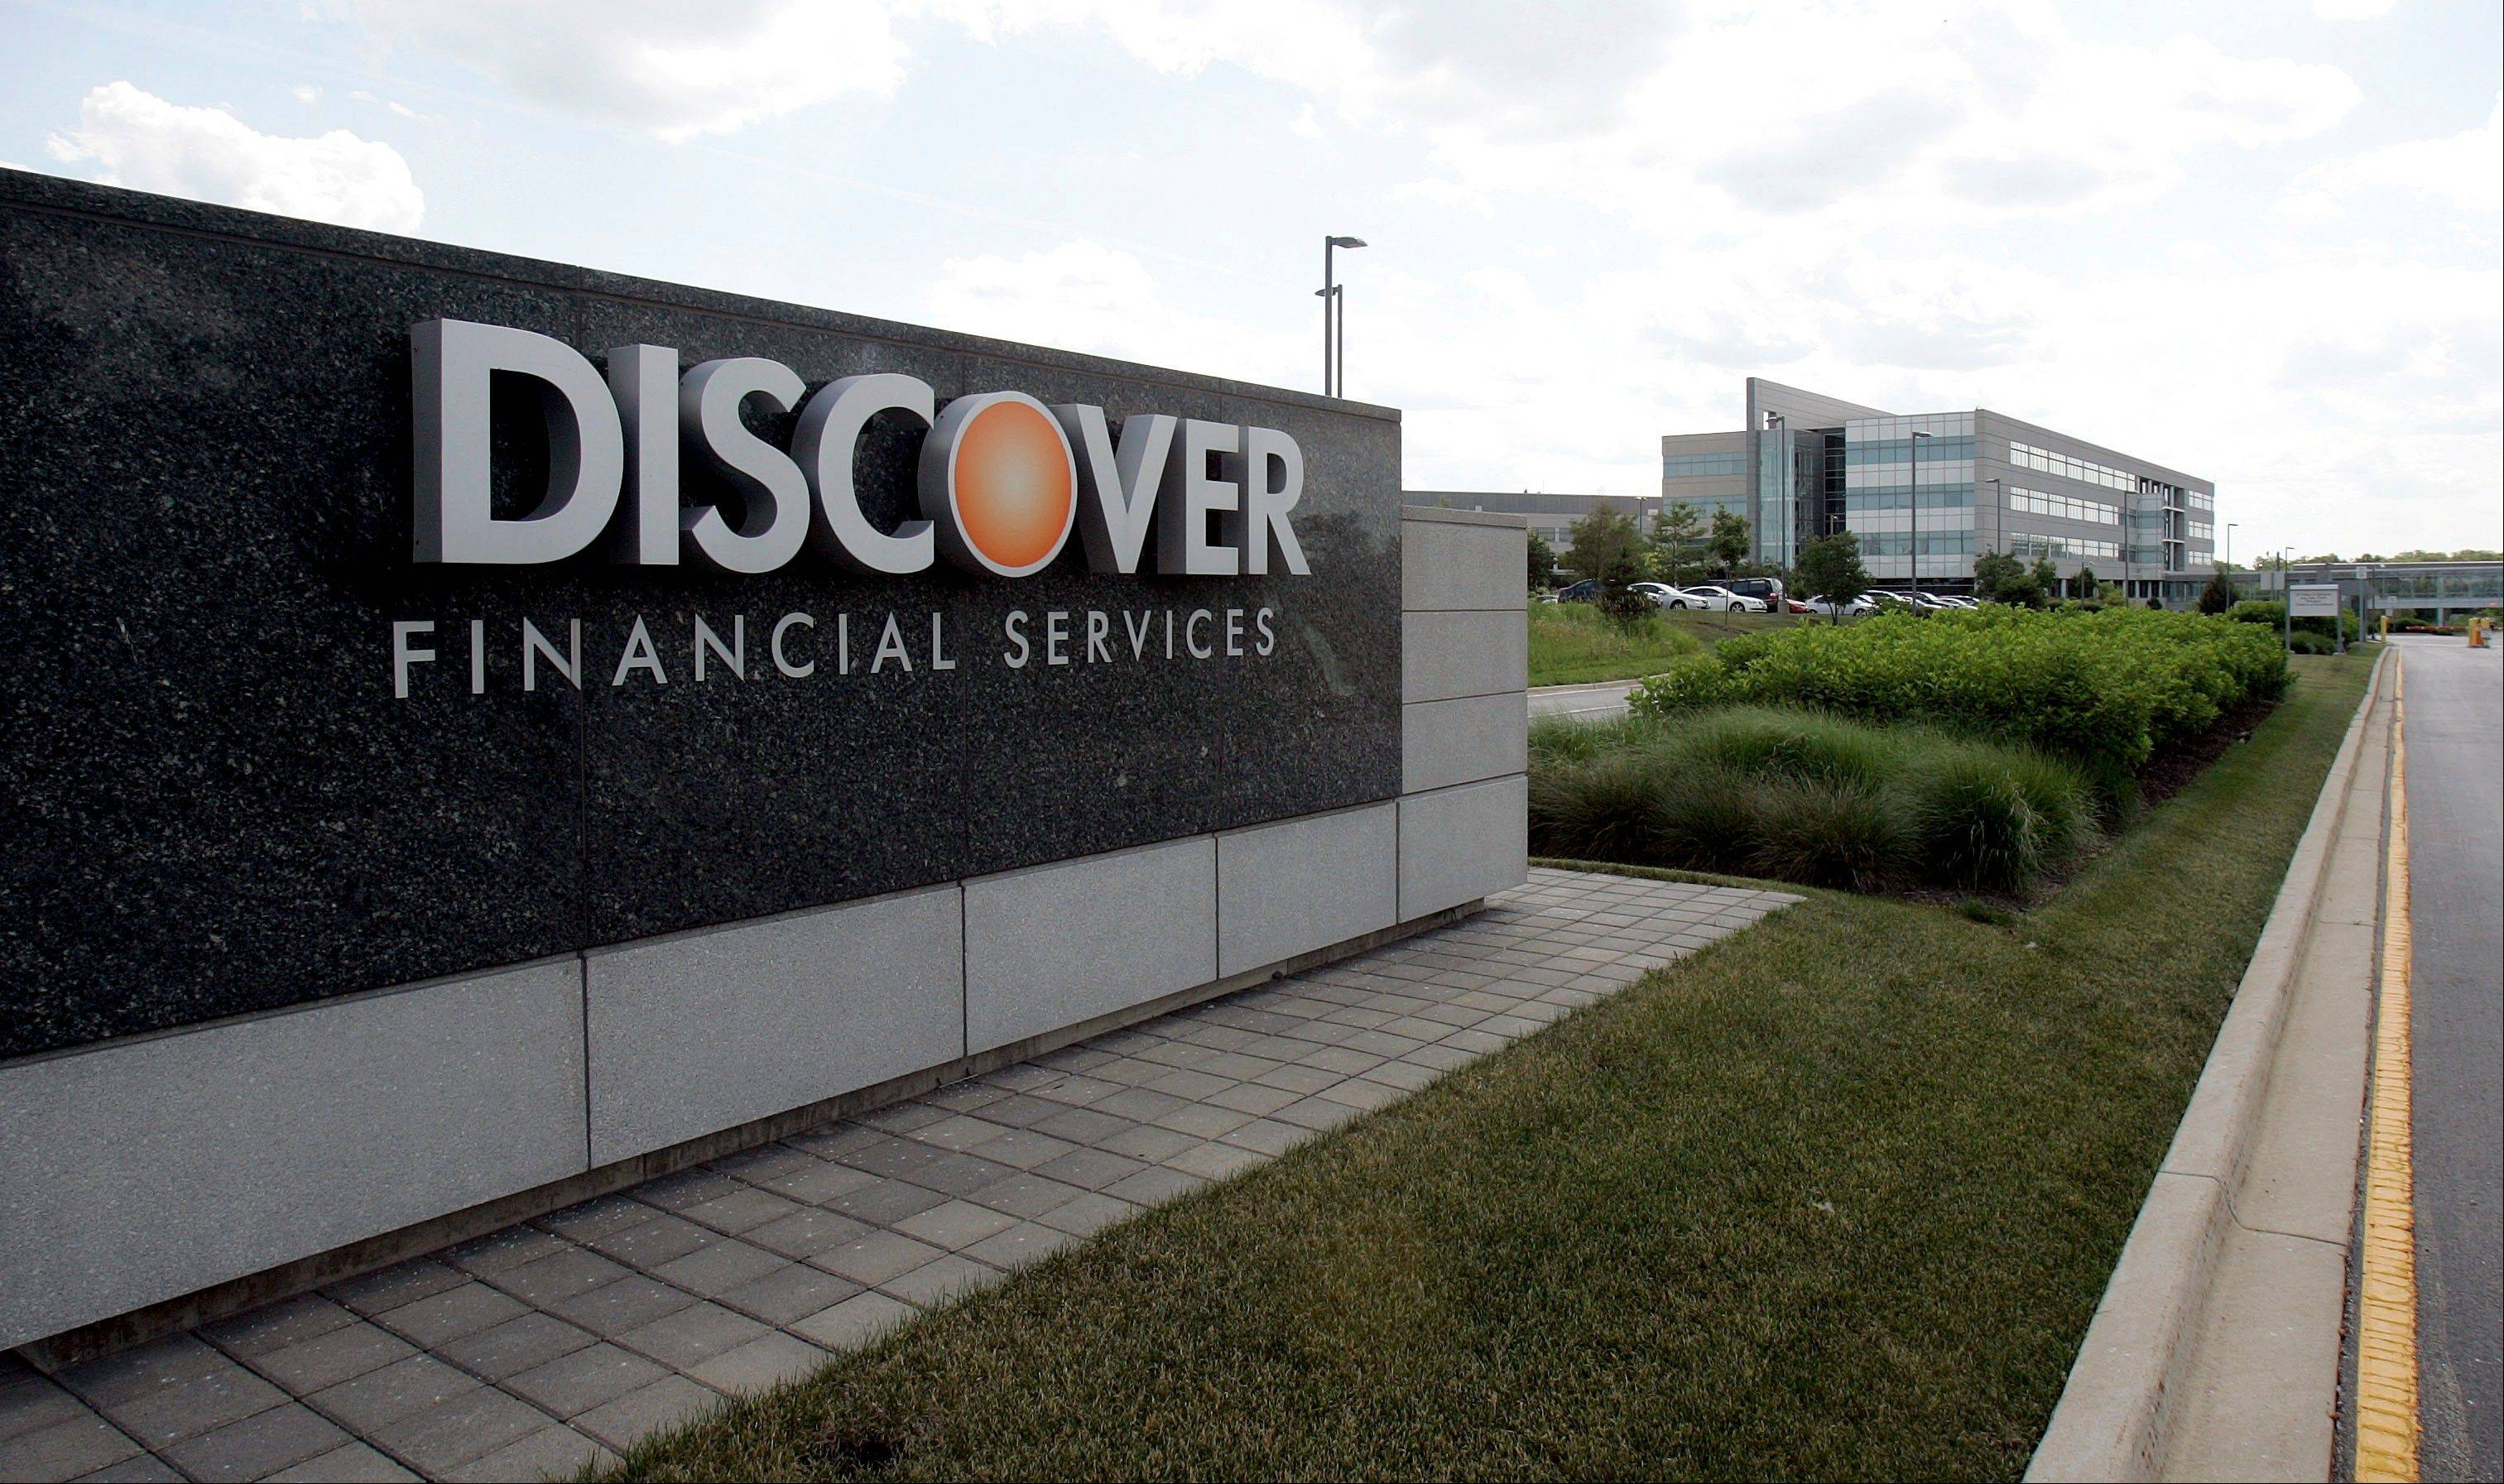 Riverwoods-based Discover Financial Services' net income fell 8 percent in the third quarter, as the lender set aside more funds to cover potential loan losses.